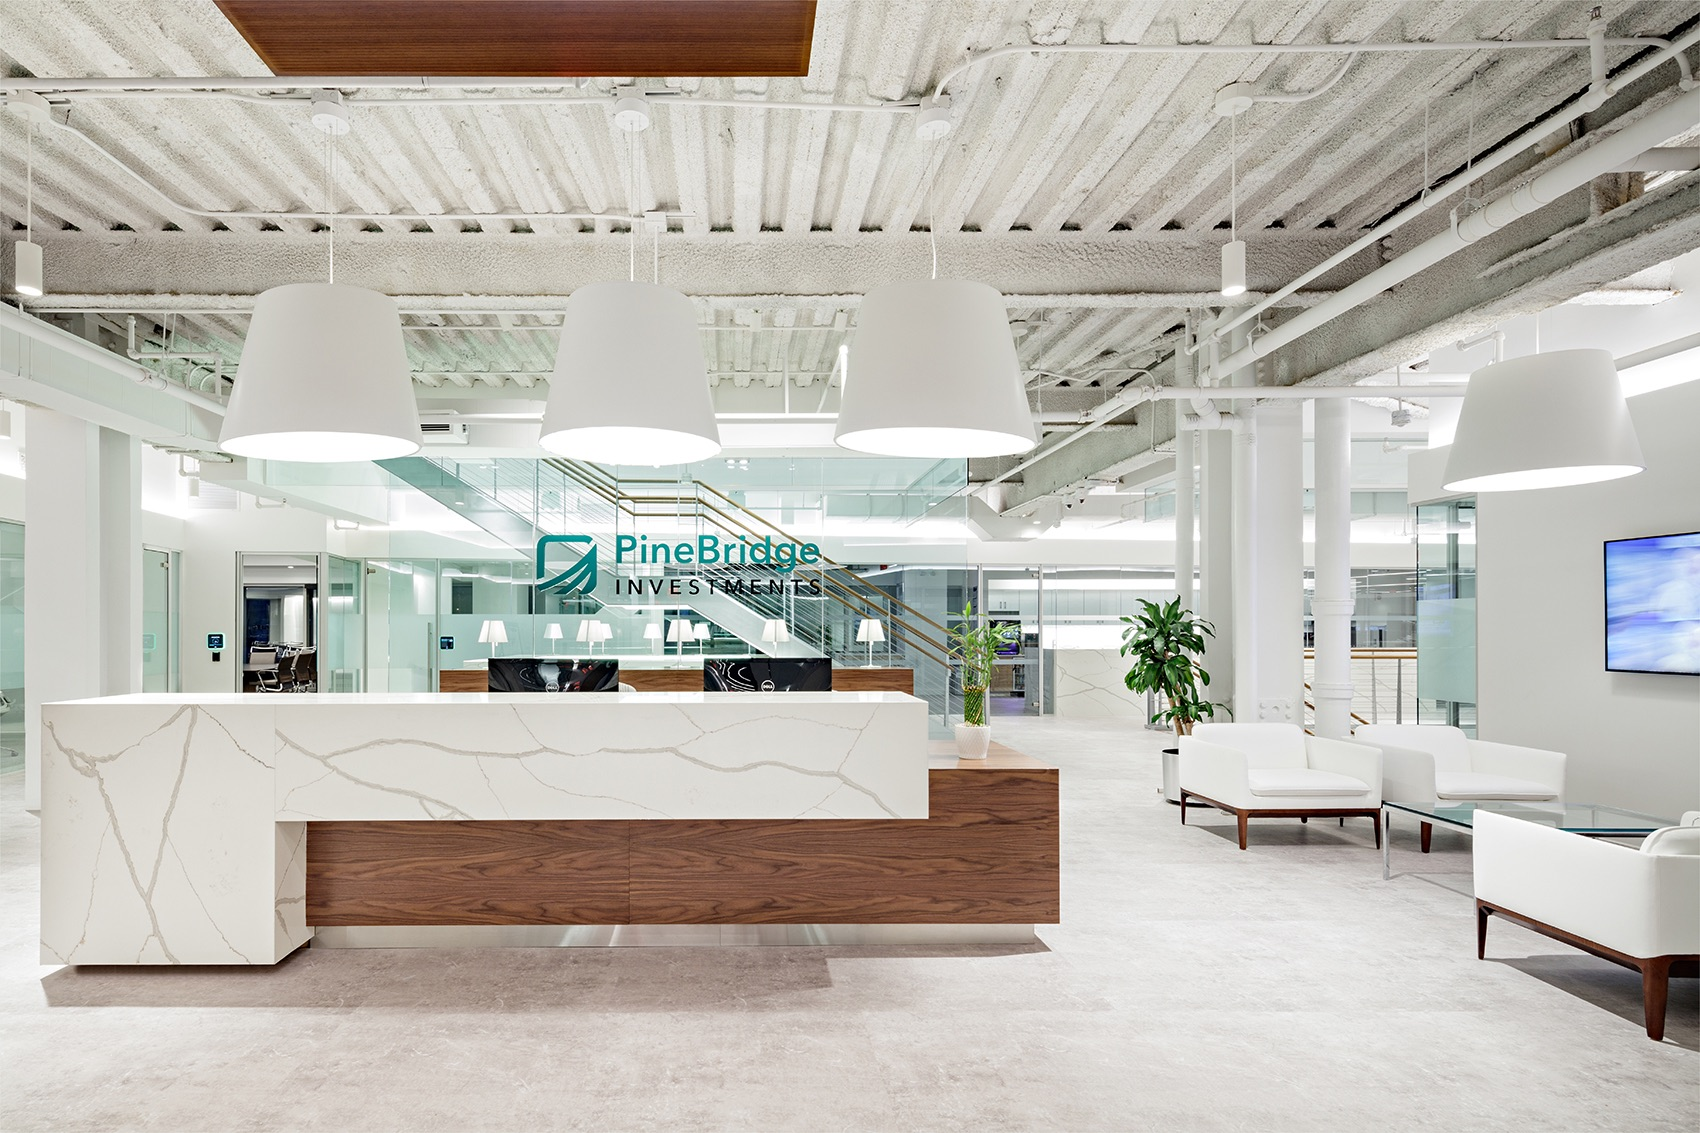 A Tour of PineBridge Investments' Modern New York City Office